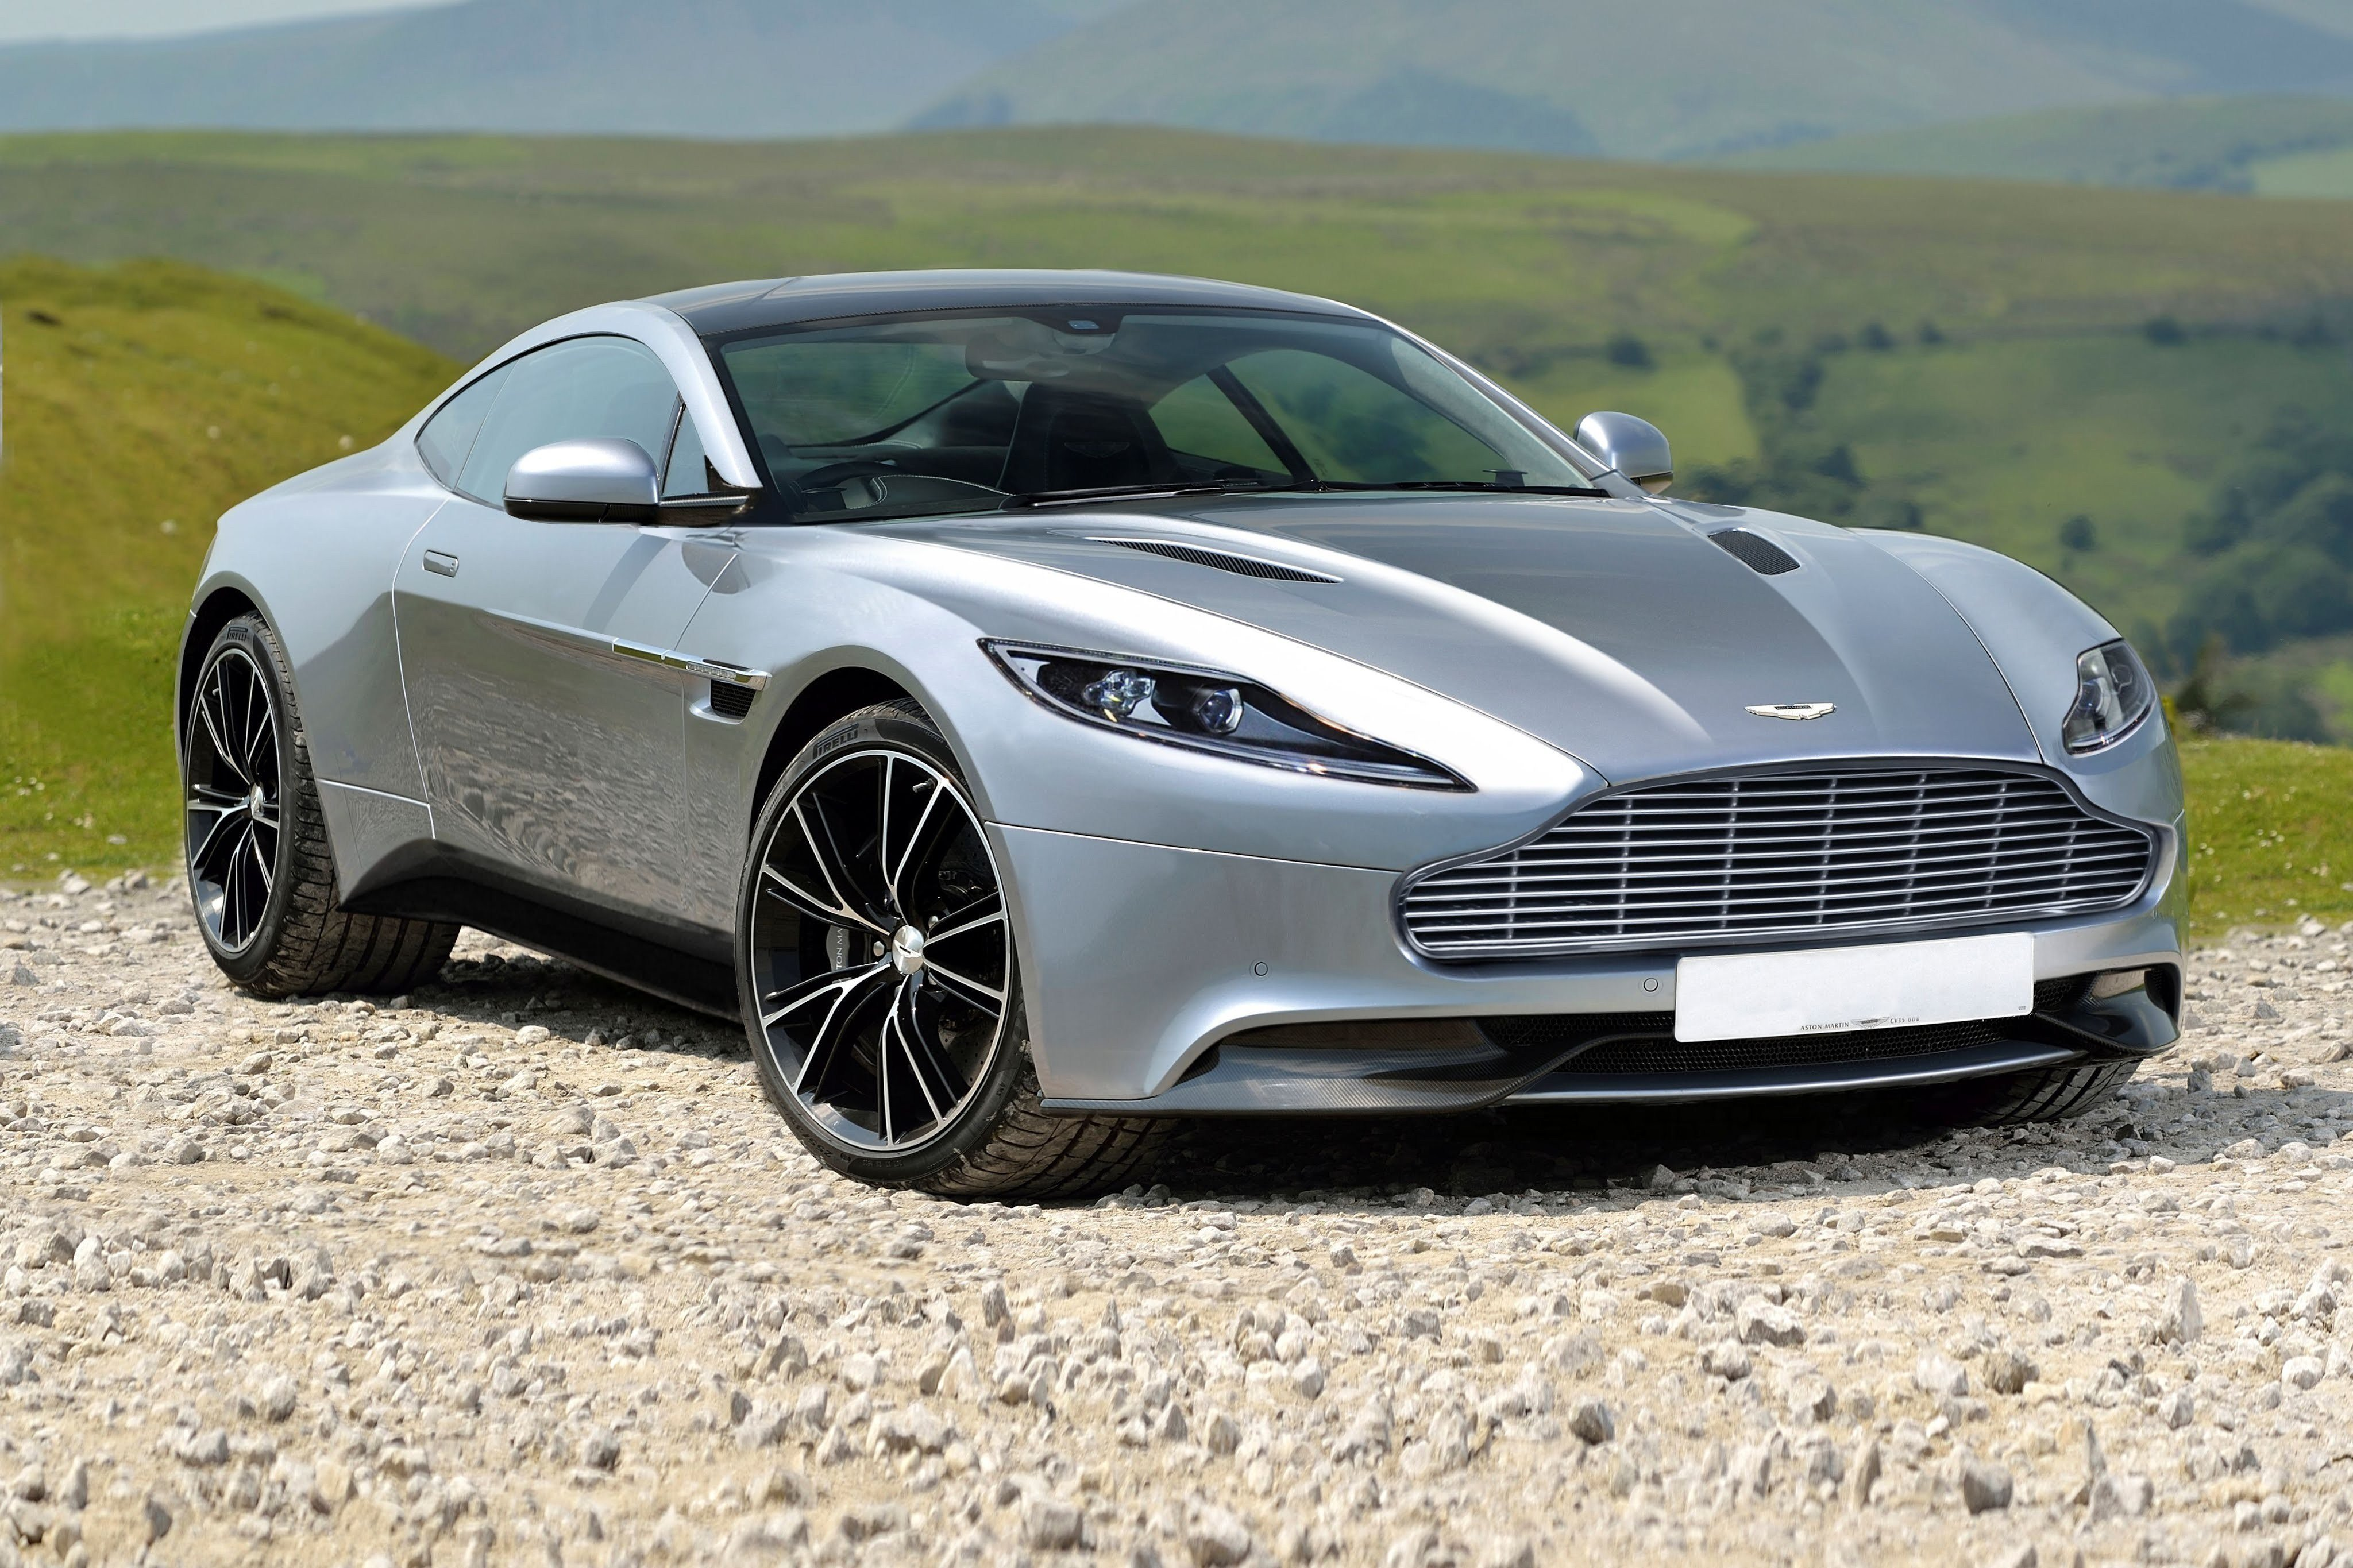 Latest Aston Martin Silver Car New Wallpaper Hd Wallpapers Free Download